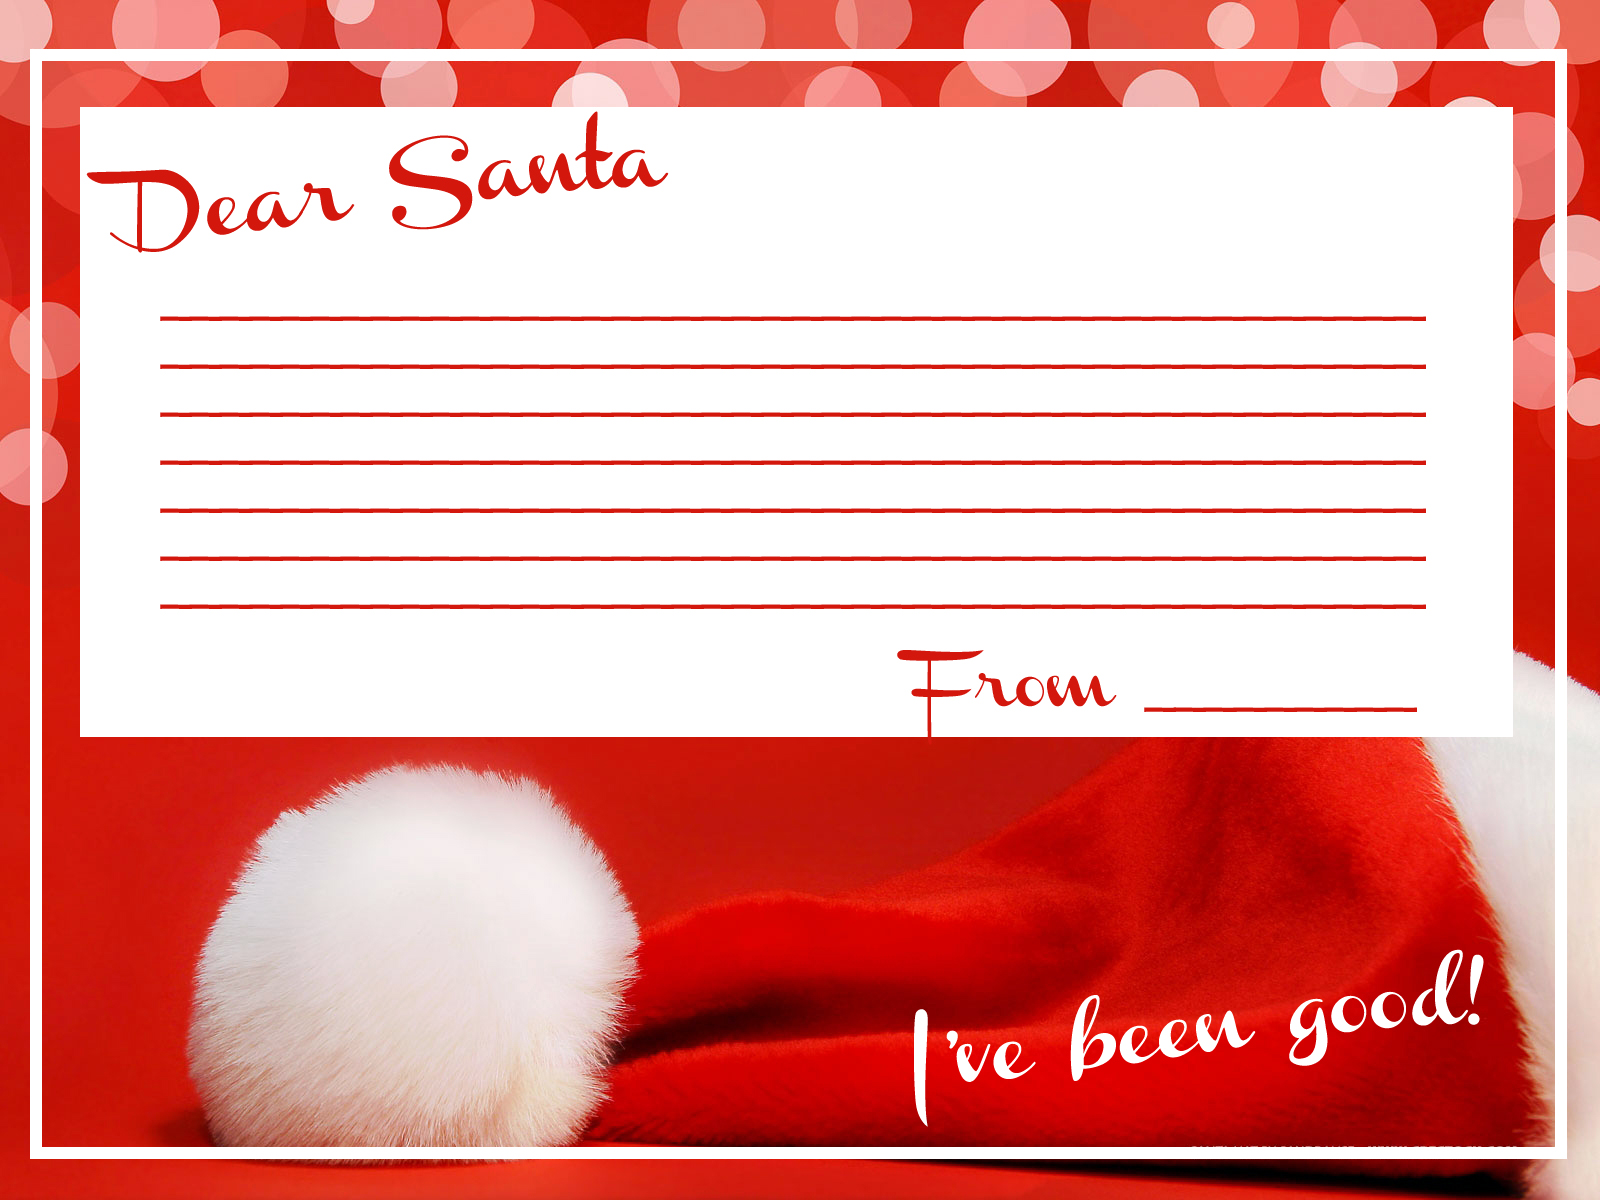 dear santa letter stationery for those of you wanting to send santa ...